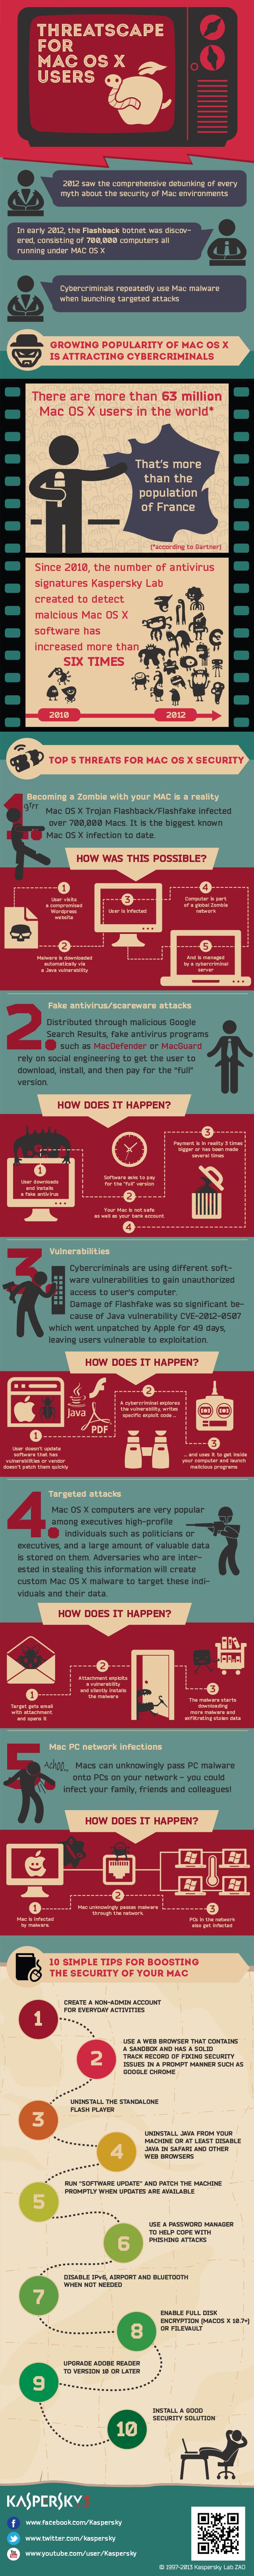 It is commonly thought that Mac users cannot be affected by viruses. Check out this infographic from Kaspersky Lab to learn more about the threatscape for Mac OS X users. Since 2010, the number of antivirus signatures Kaspersky Lab created to detect malicious Mac OS X software has increased more than six times! #infographic #Apple #malware #facts